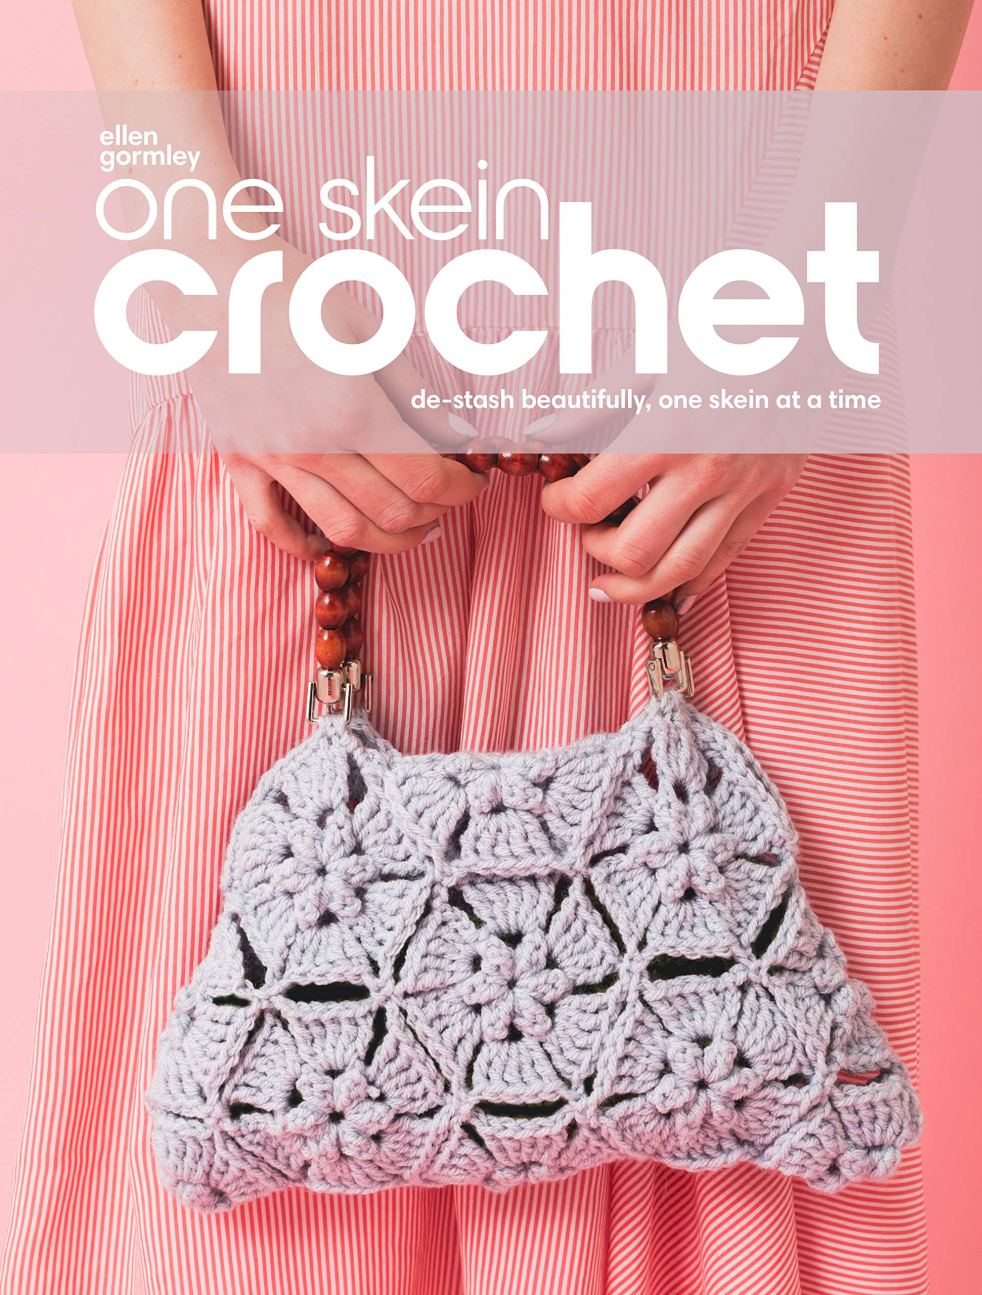 one skein crochet by ellen gormley